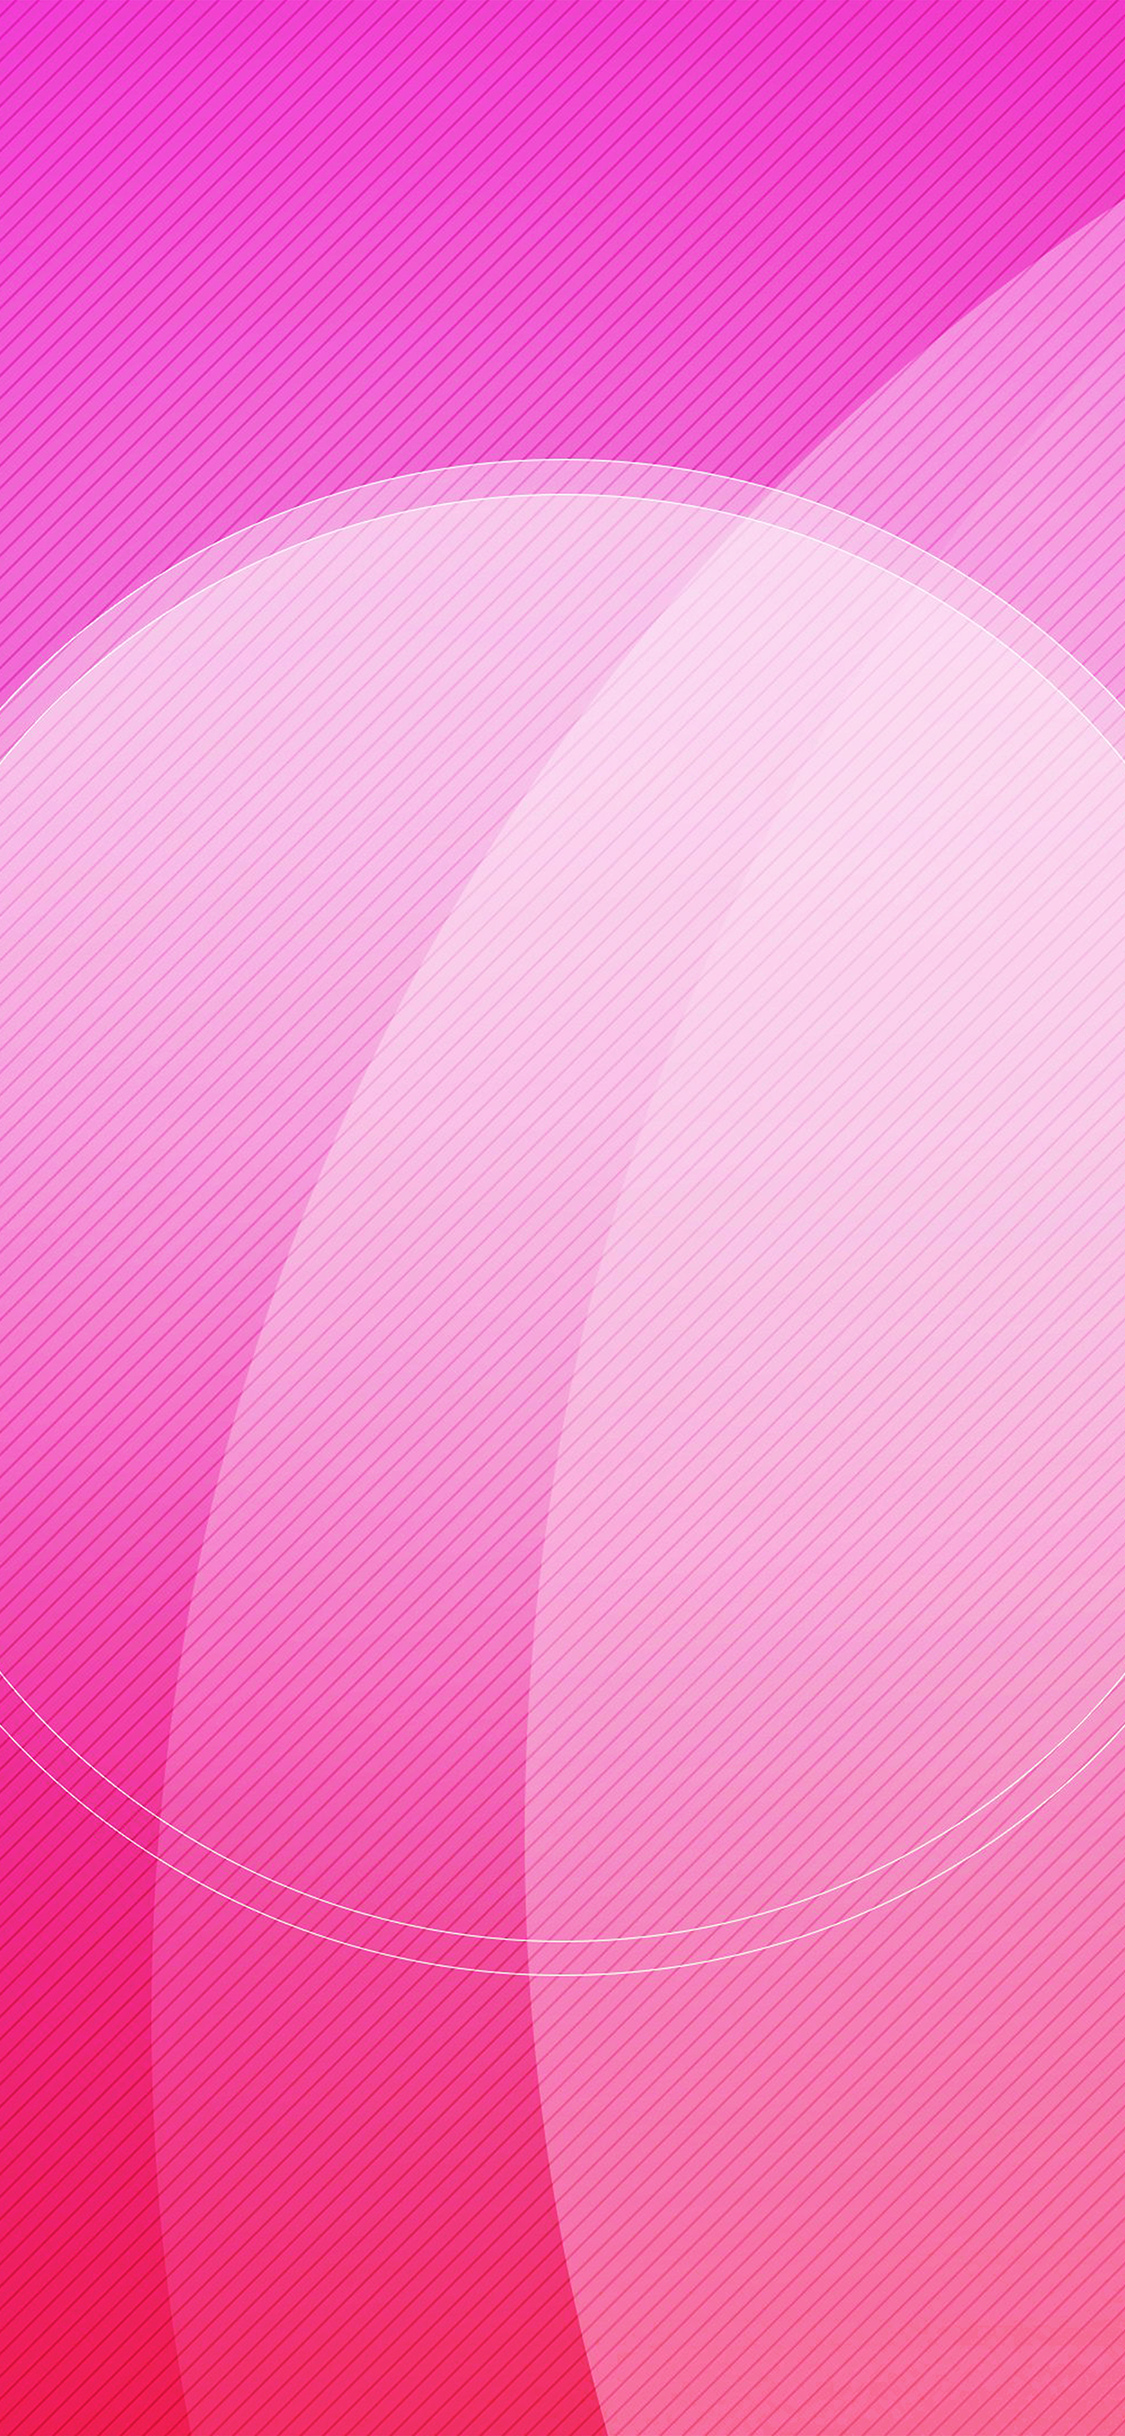 iPhoneXpapers.com-Apple-iPhone-wallpaper-vp52-pink-red-digital-art-circle-pattern